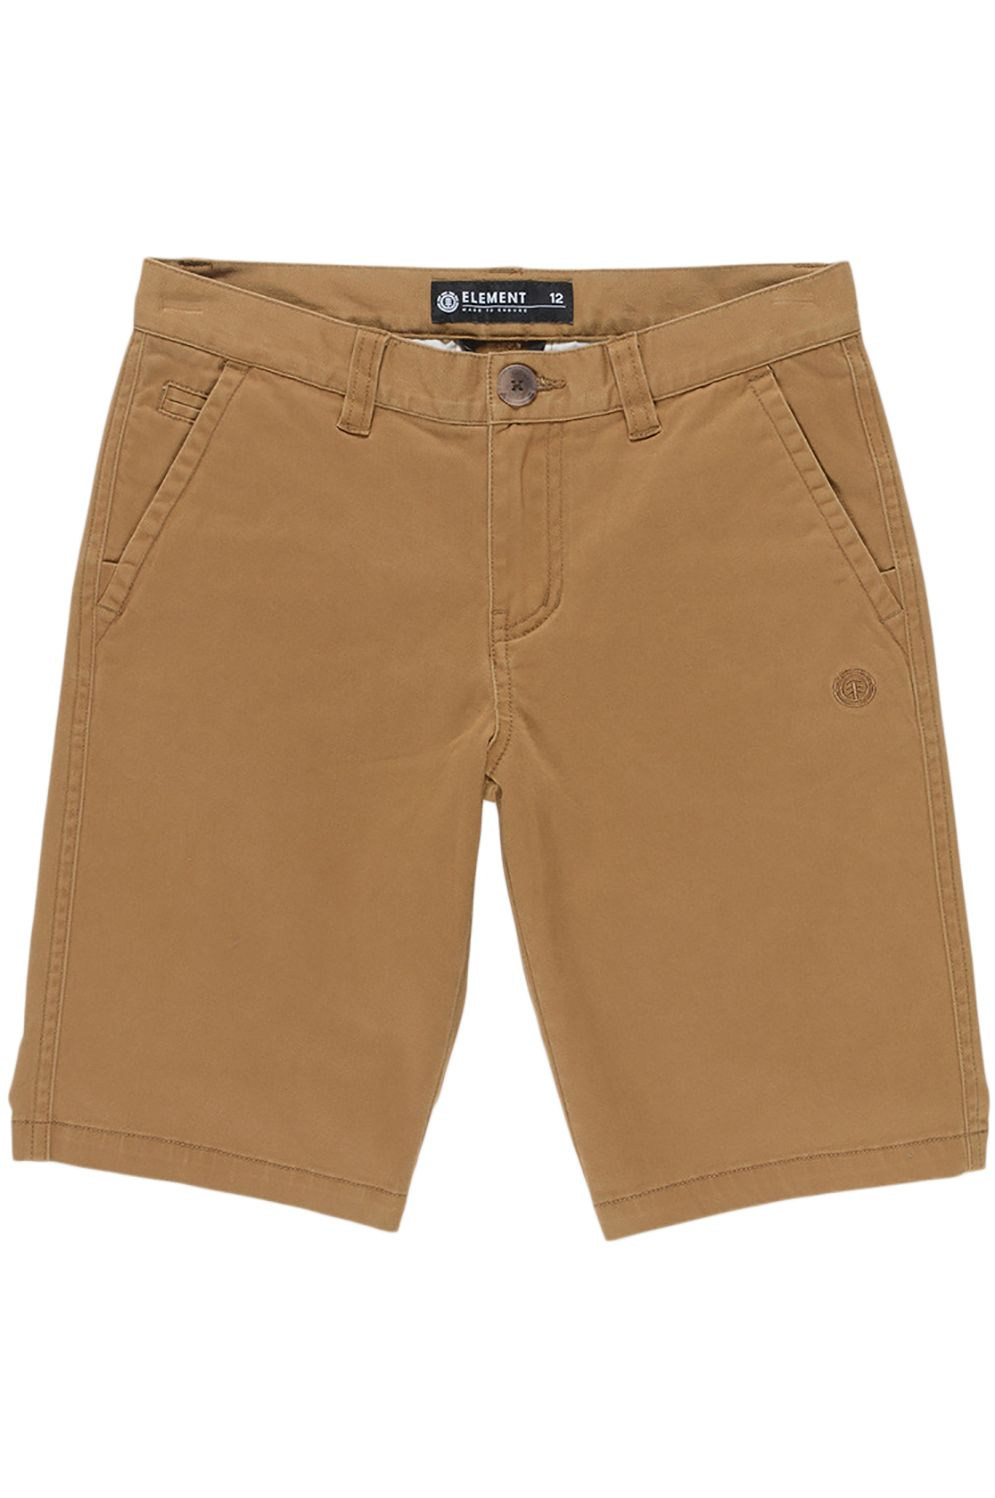 Element Walkshorts HOWLAND CLASSIC FOUNDATION Bronco Brown